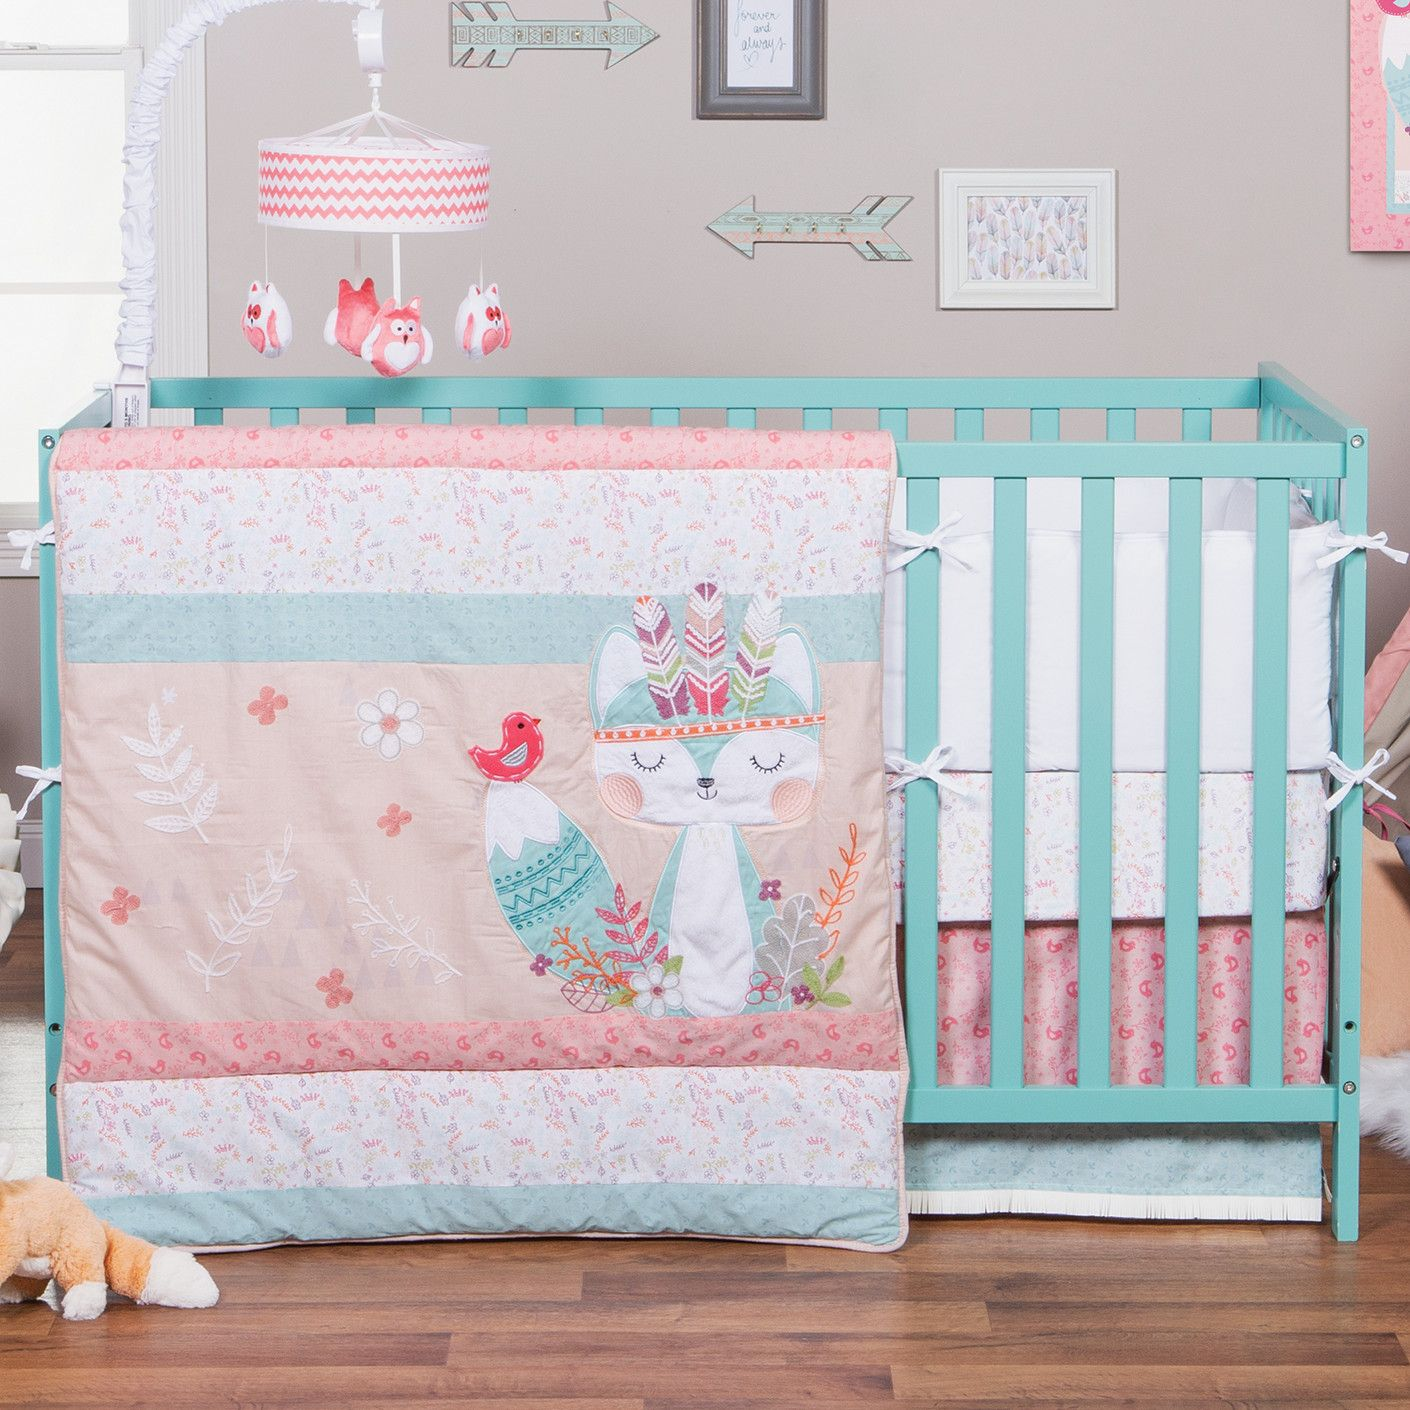 Little Leo S Nursery Fit For A King: Features: -Soft 100% Cotton Crib Sheet Fit Standard Crib